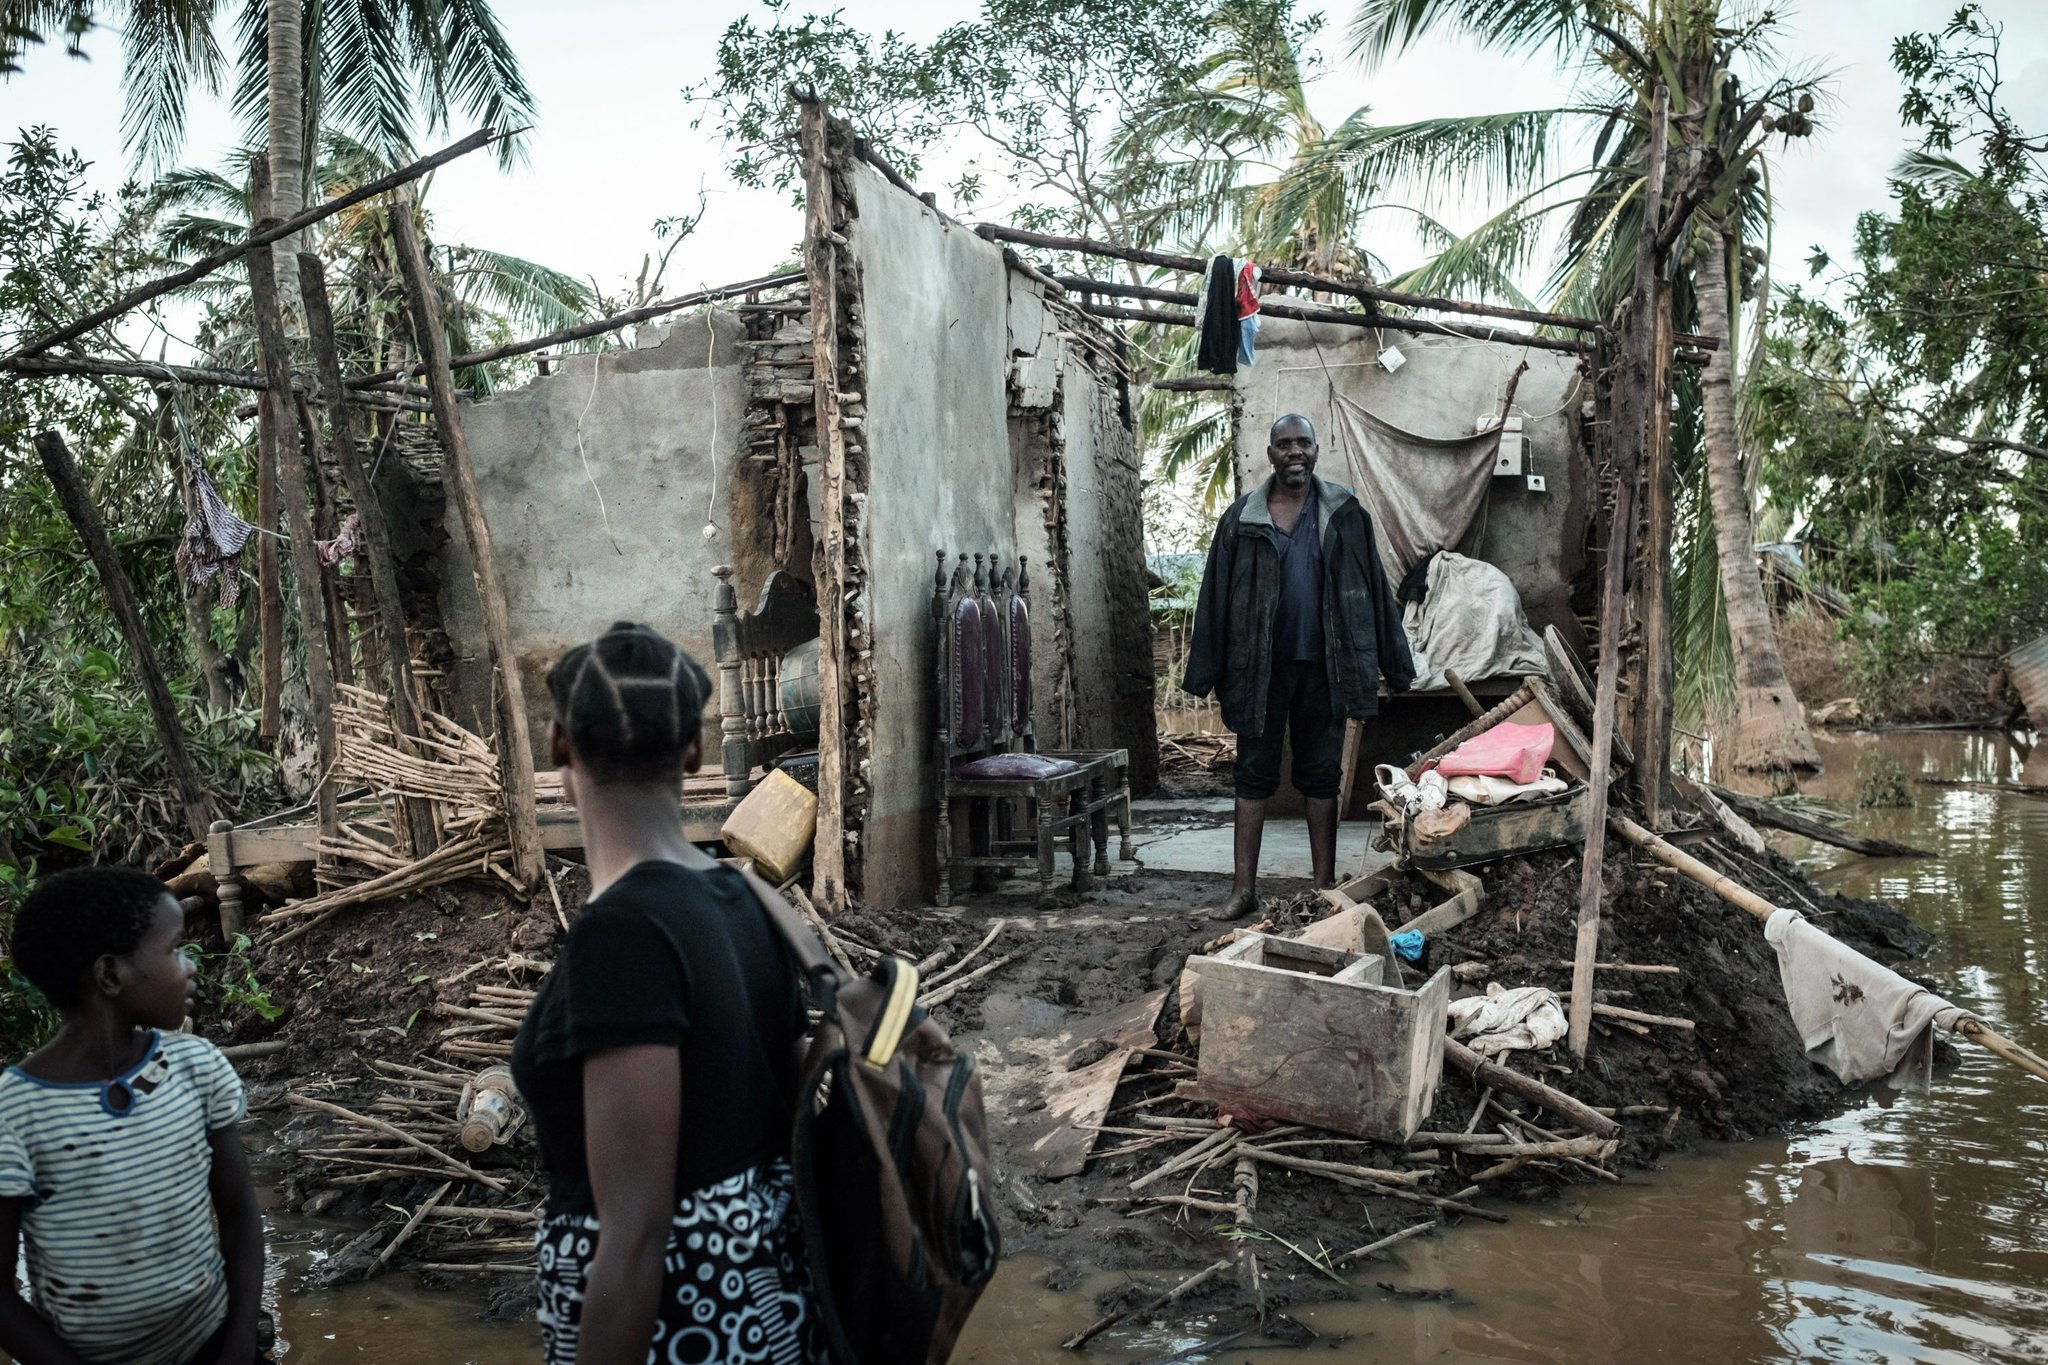 From the remnants of his home, Francisco Simon looked out at his daughters as they went off to sleep in a shelter in Buzi, Mozambique on Friday. Credit Yasuyoshi Chiba/Agence France-Presse — Getty Images